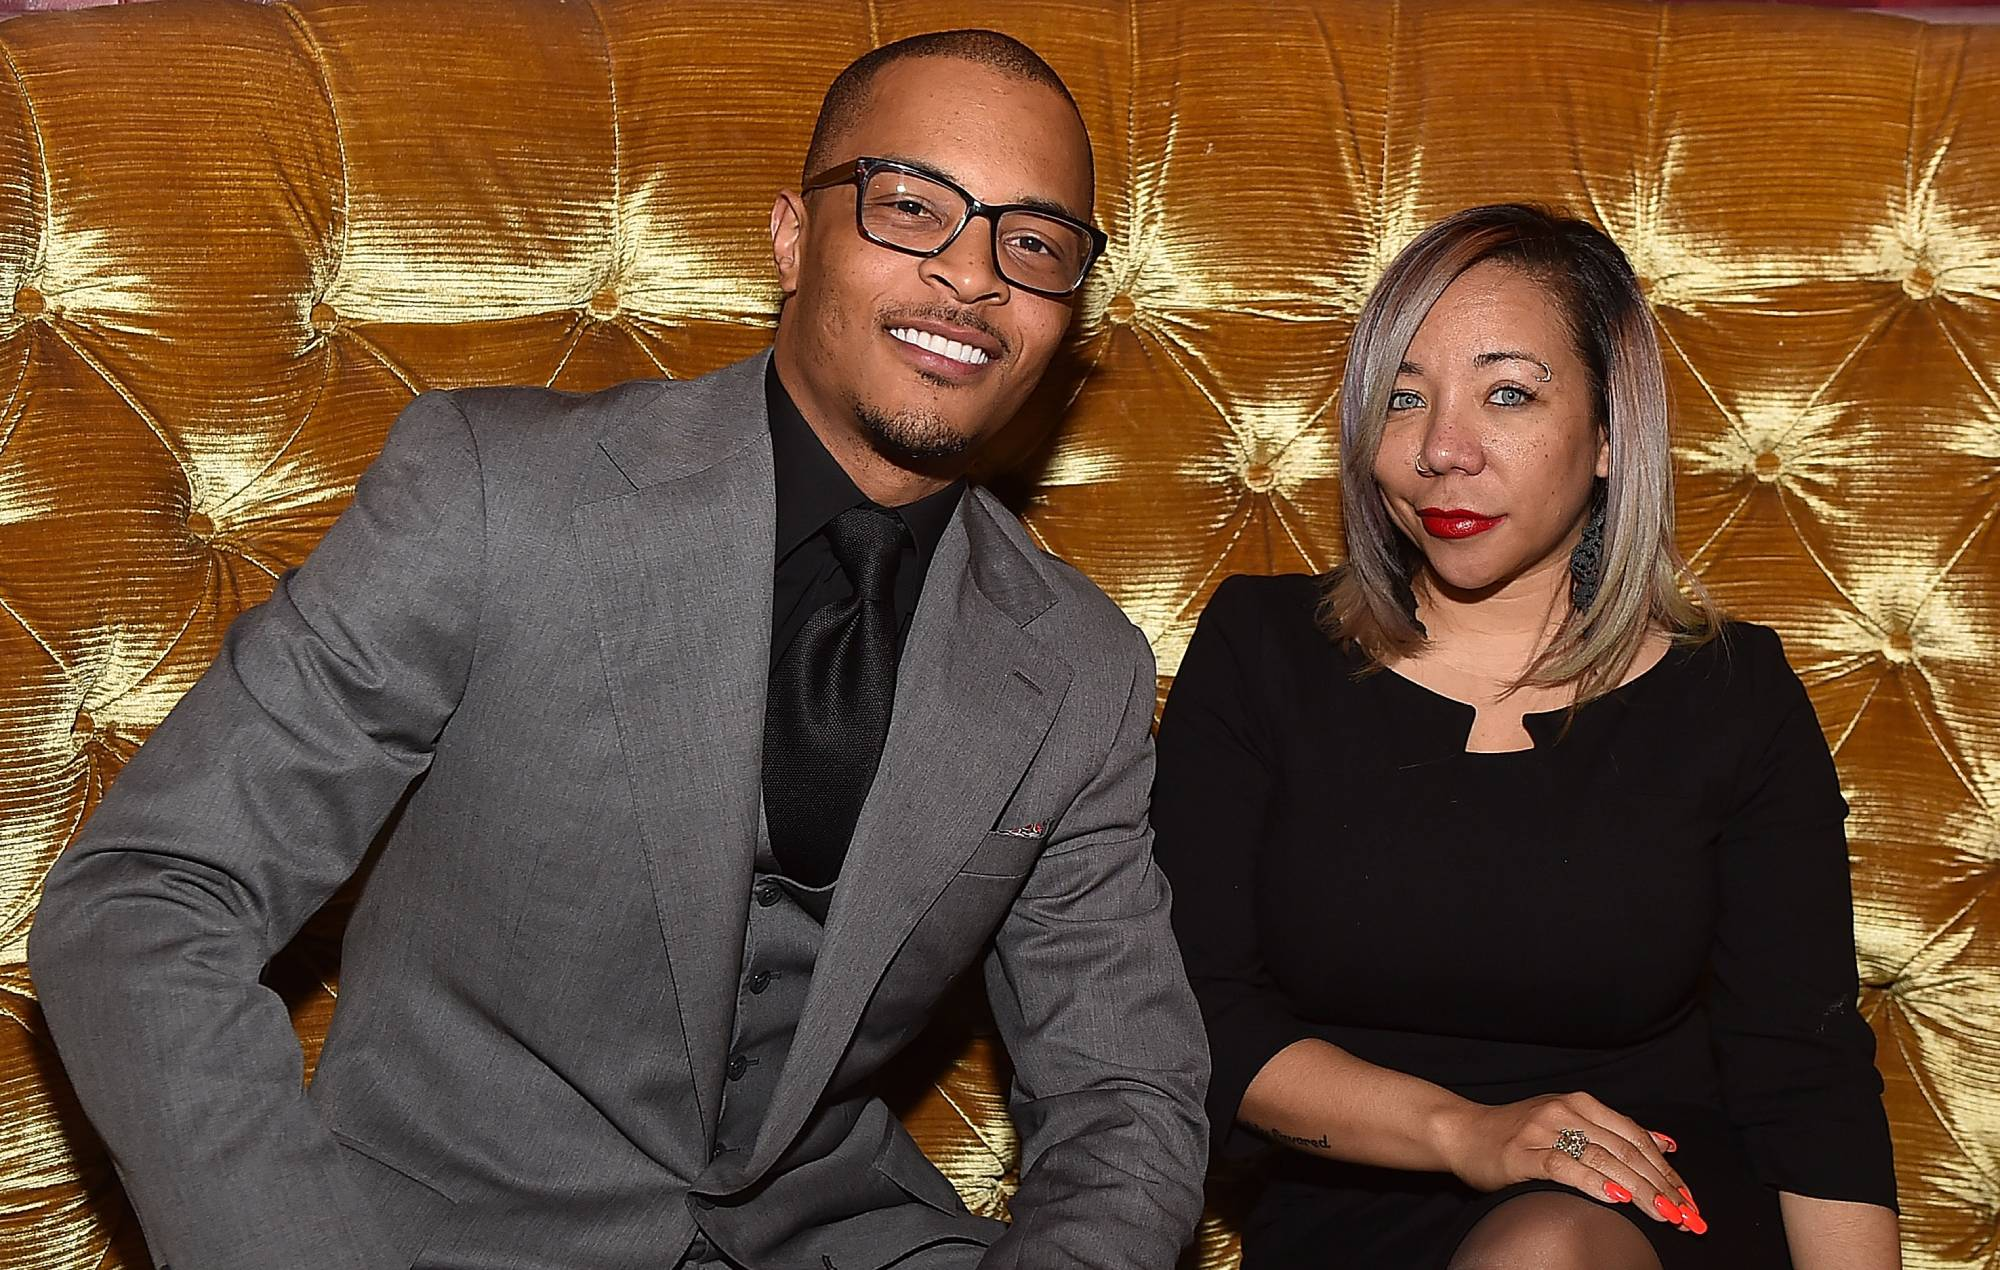 Six more people accuse T.I. and Tiny of sexual assault